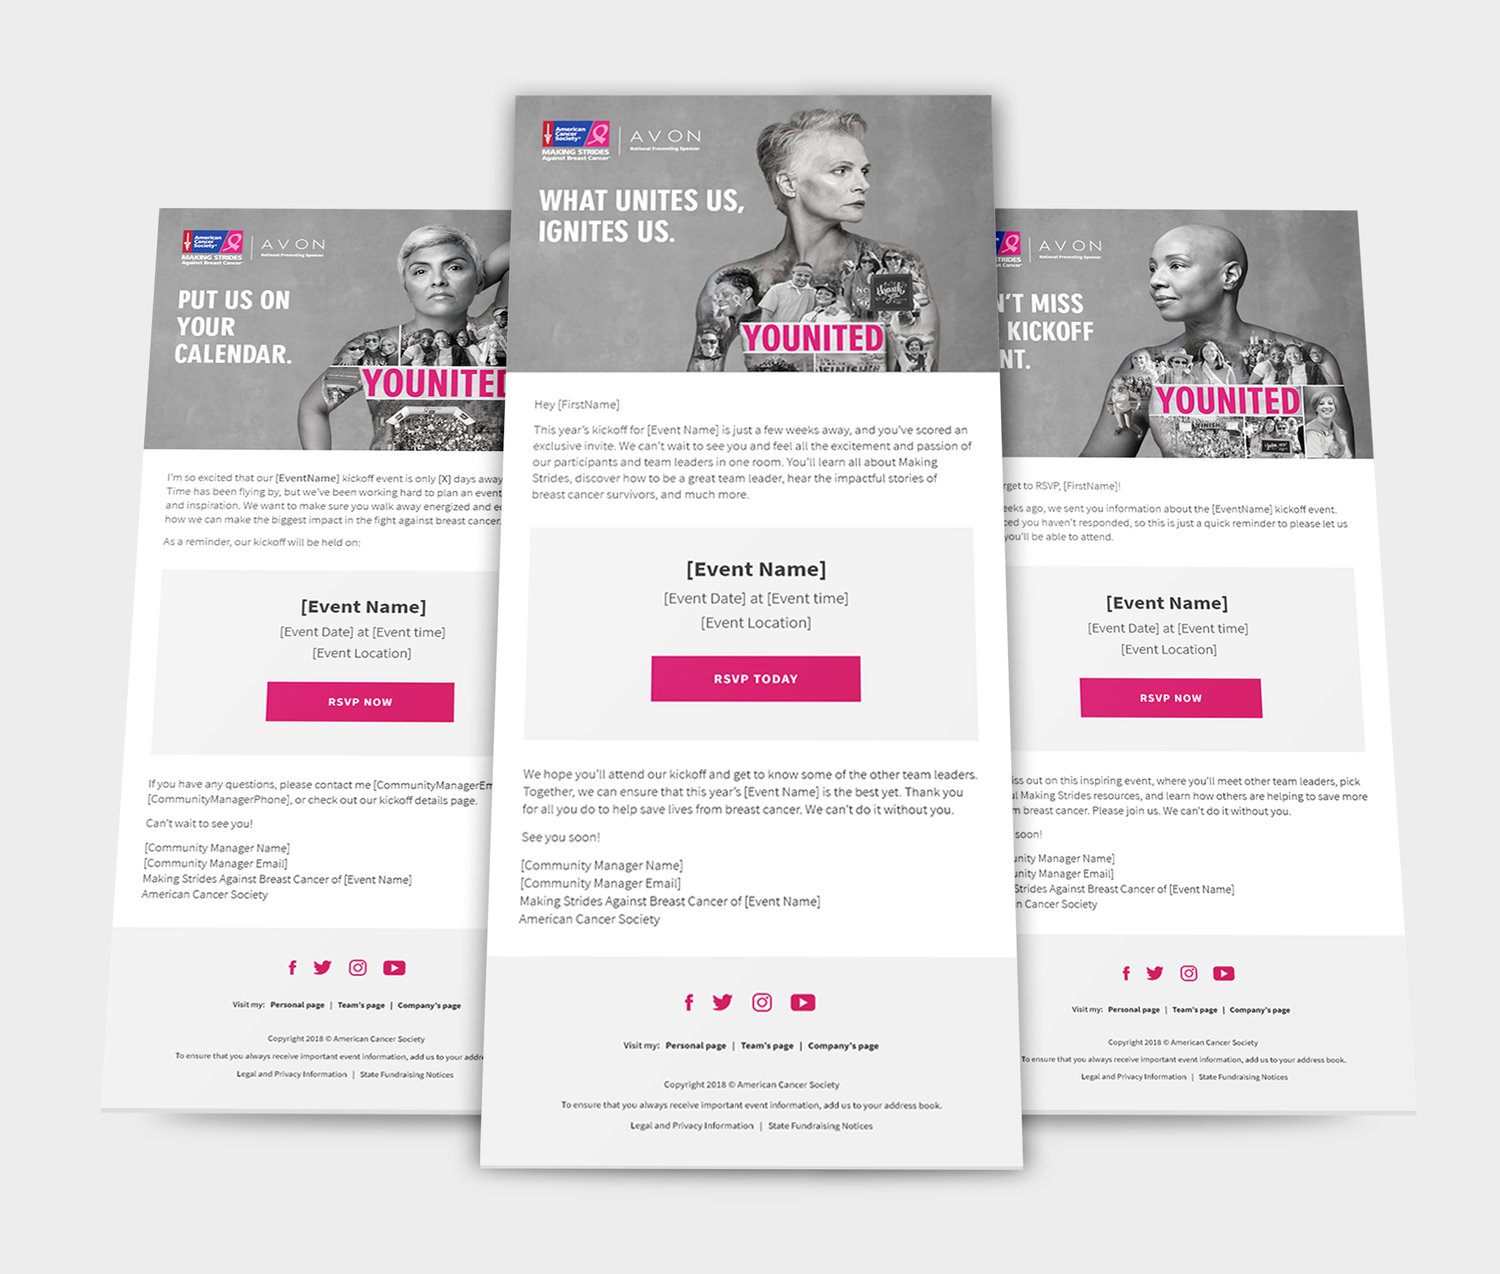 Emails | American Cancer Society | Making Strides Against Breast Cancer Campaign 2018